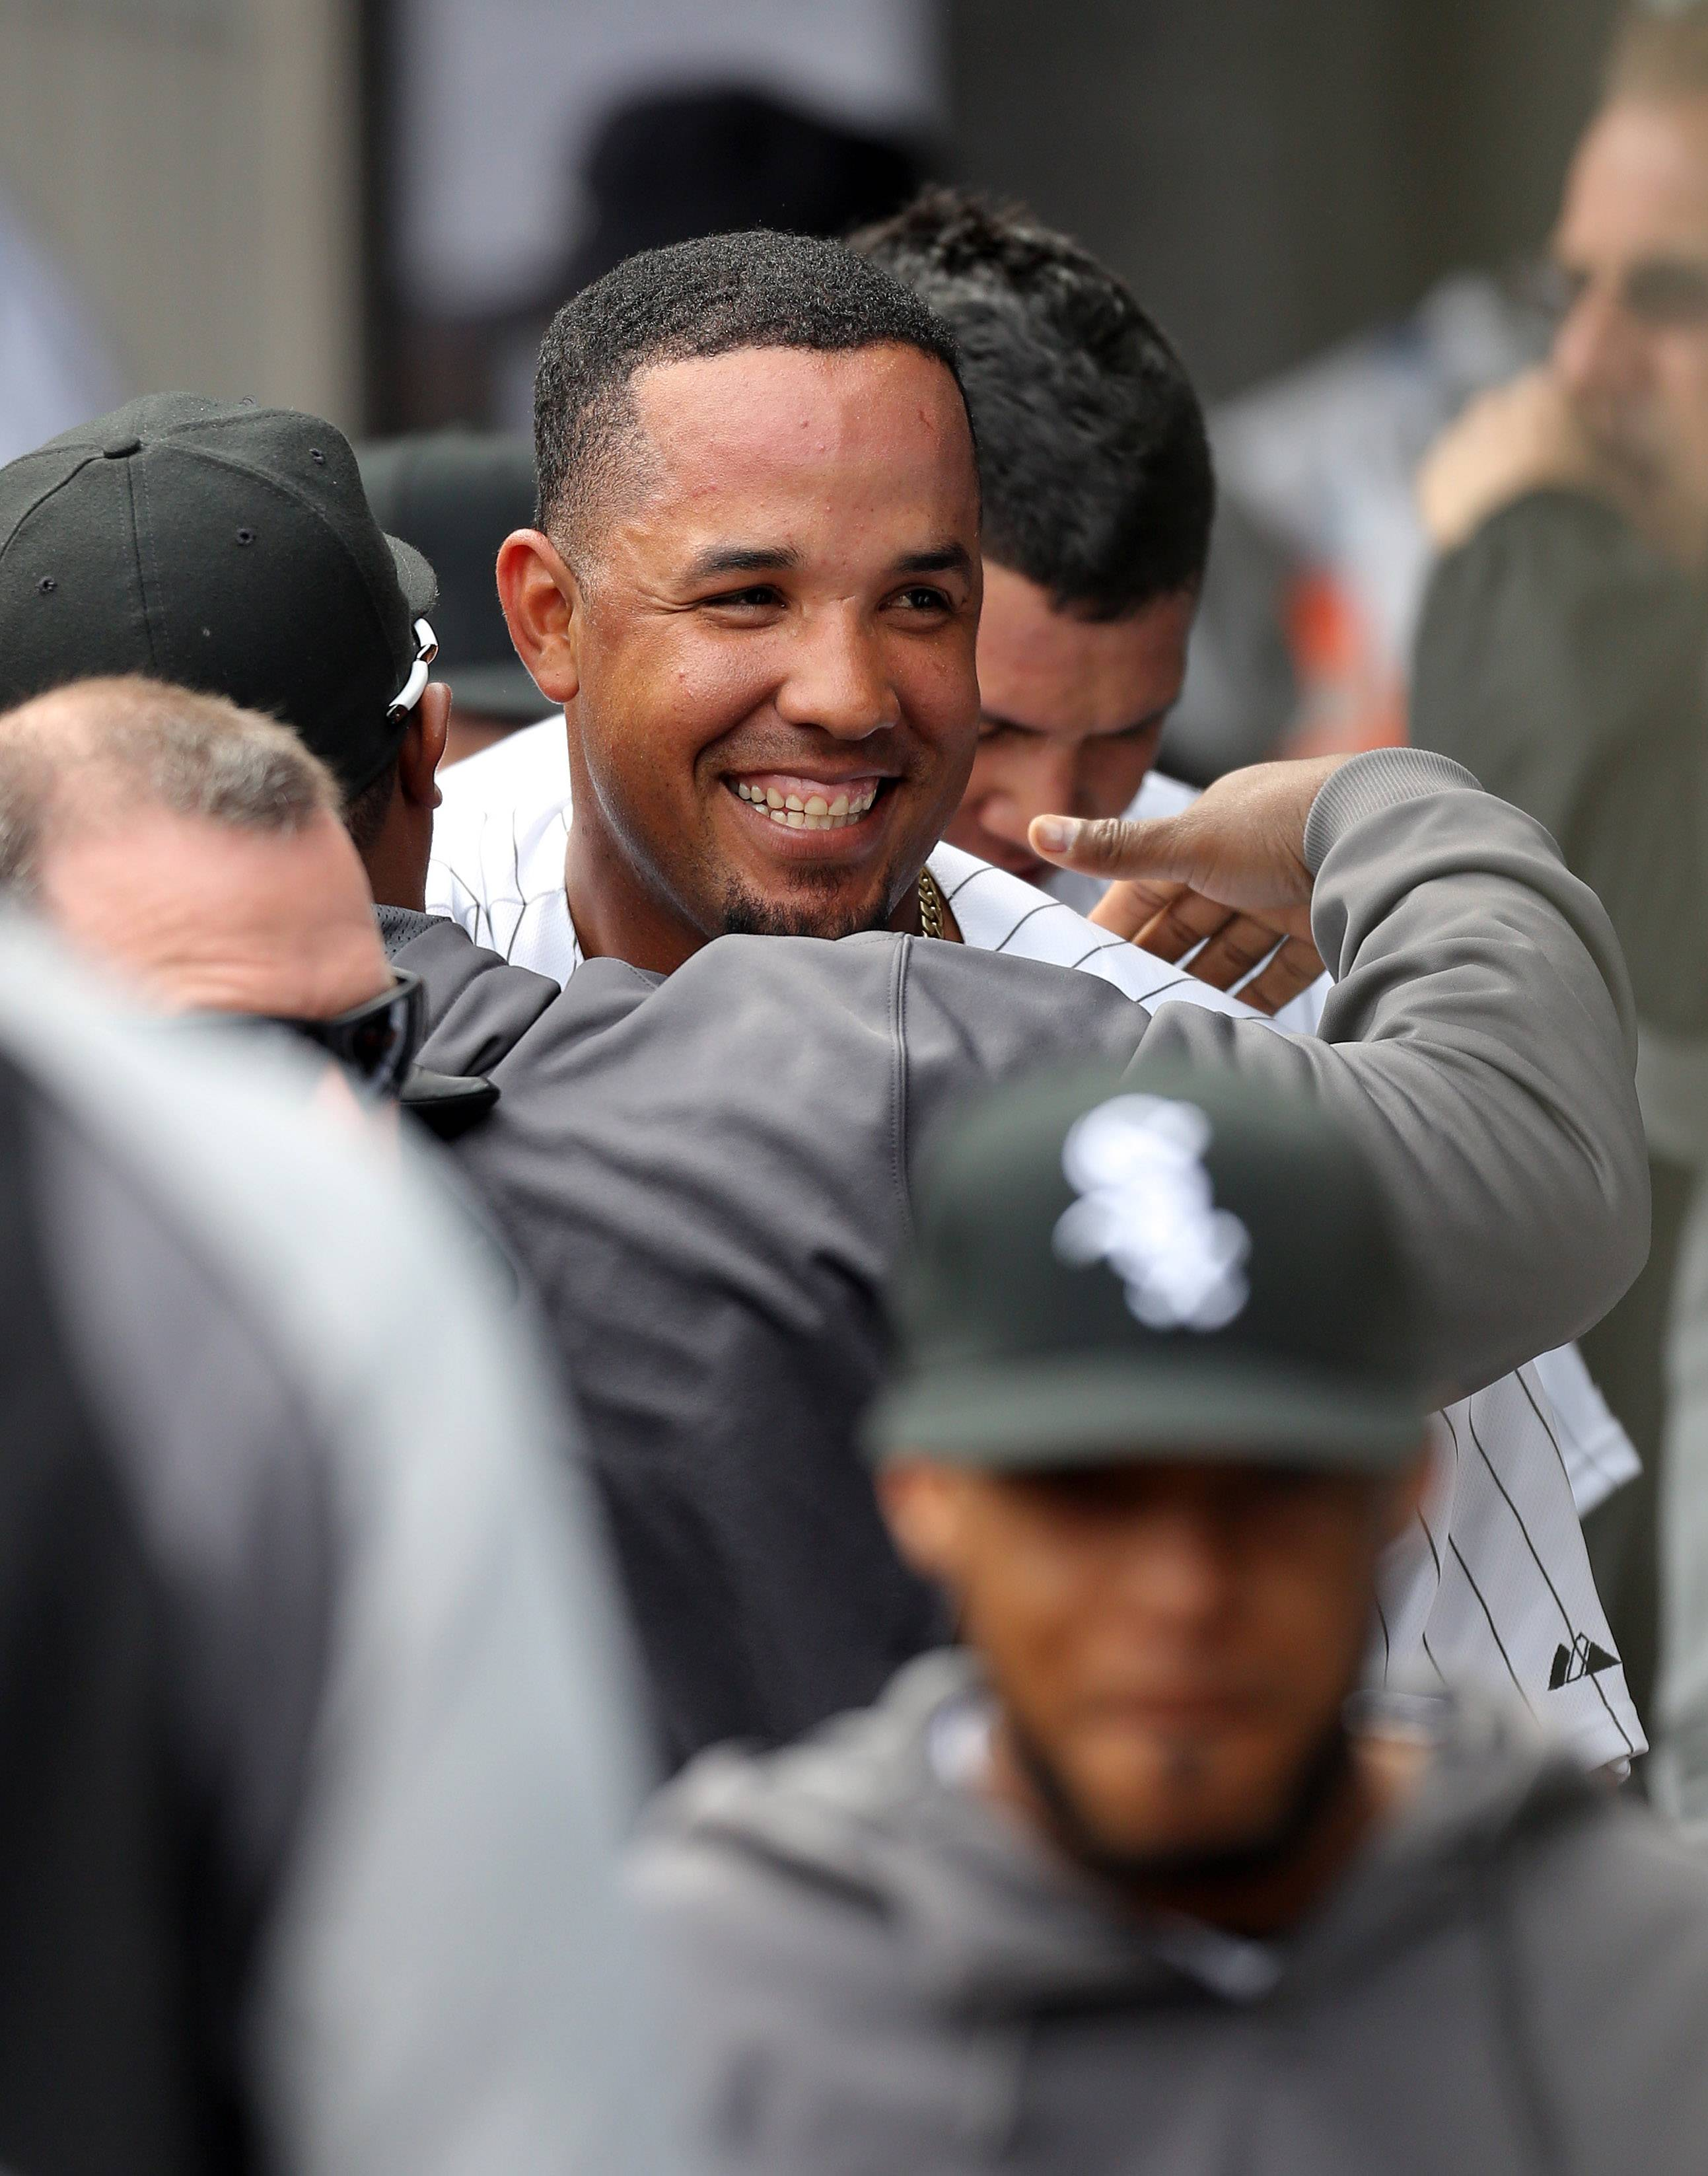 Chicago White Sox Jose Abreu celebrates in the dugout after scoring in the second inning during the White Sox home opener against the Minnesota twins Monday at US Cellular Field.